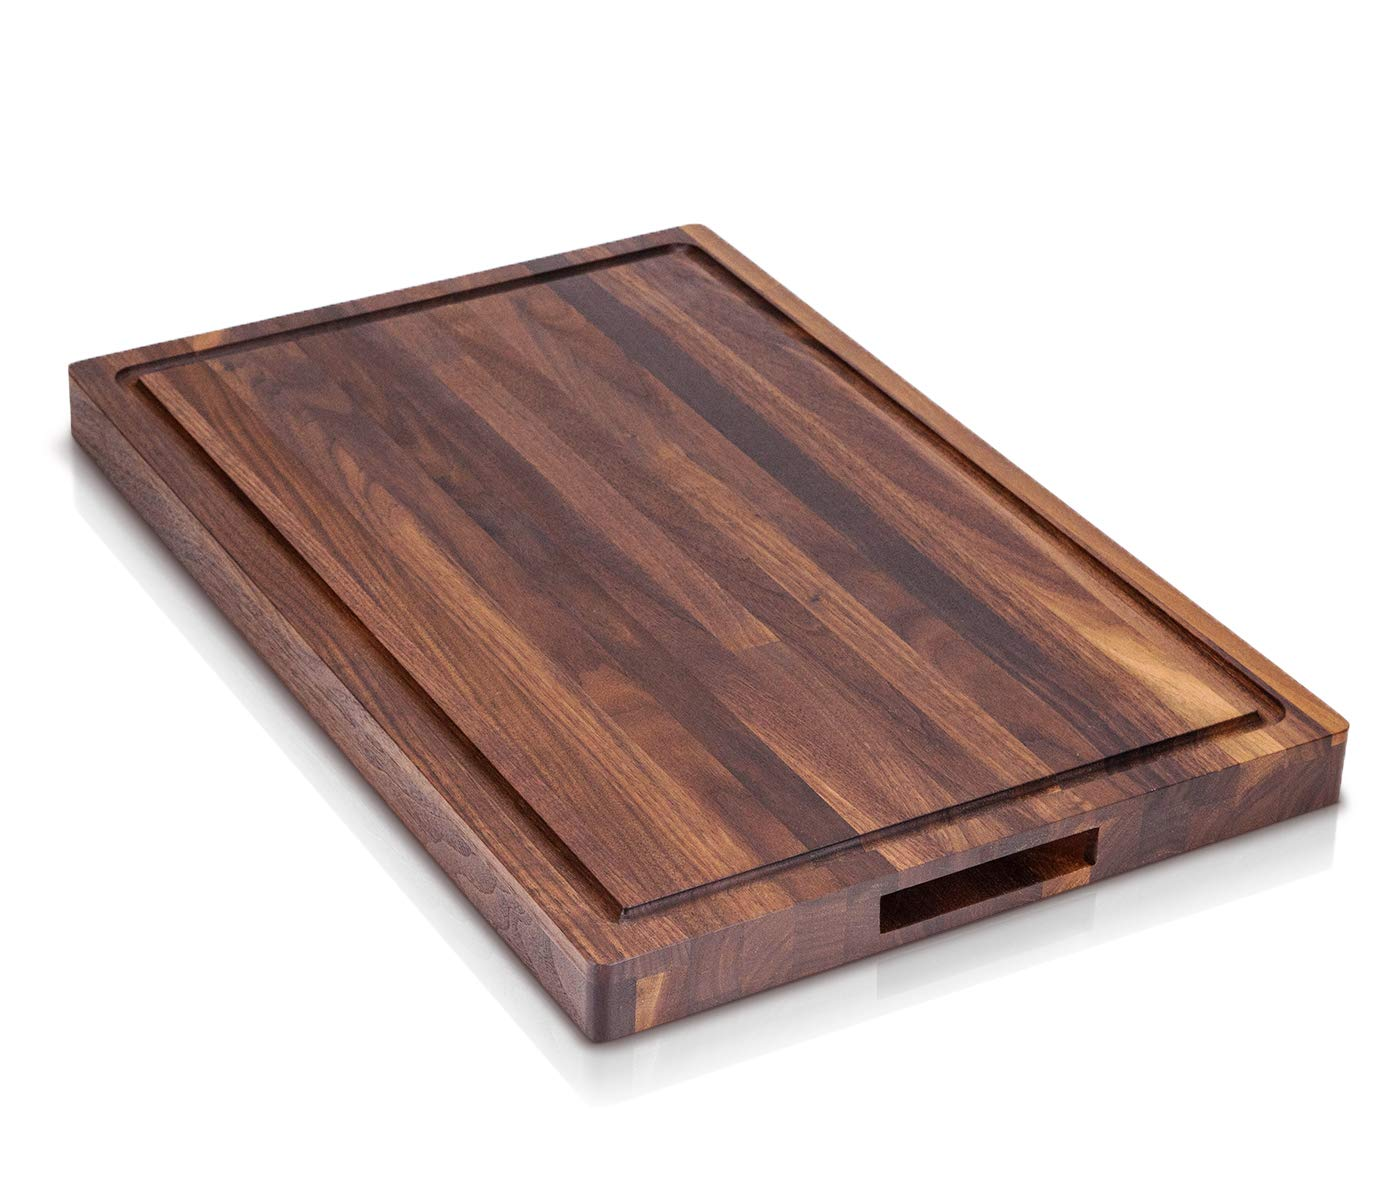 Mevell Large Walnut Butcher Block With Handles - Big Cutting Board with Juice Drip Grooves, Made from American Hardwood Walnut, Great for Chopping and Carving (Walnut, 18x12x1.25H)